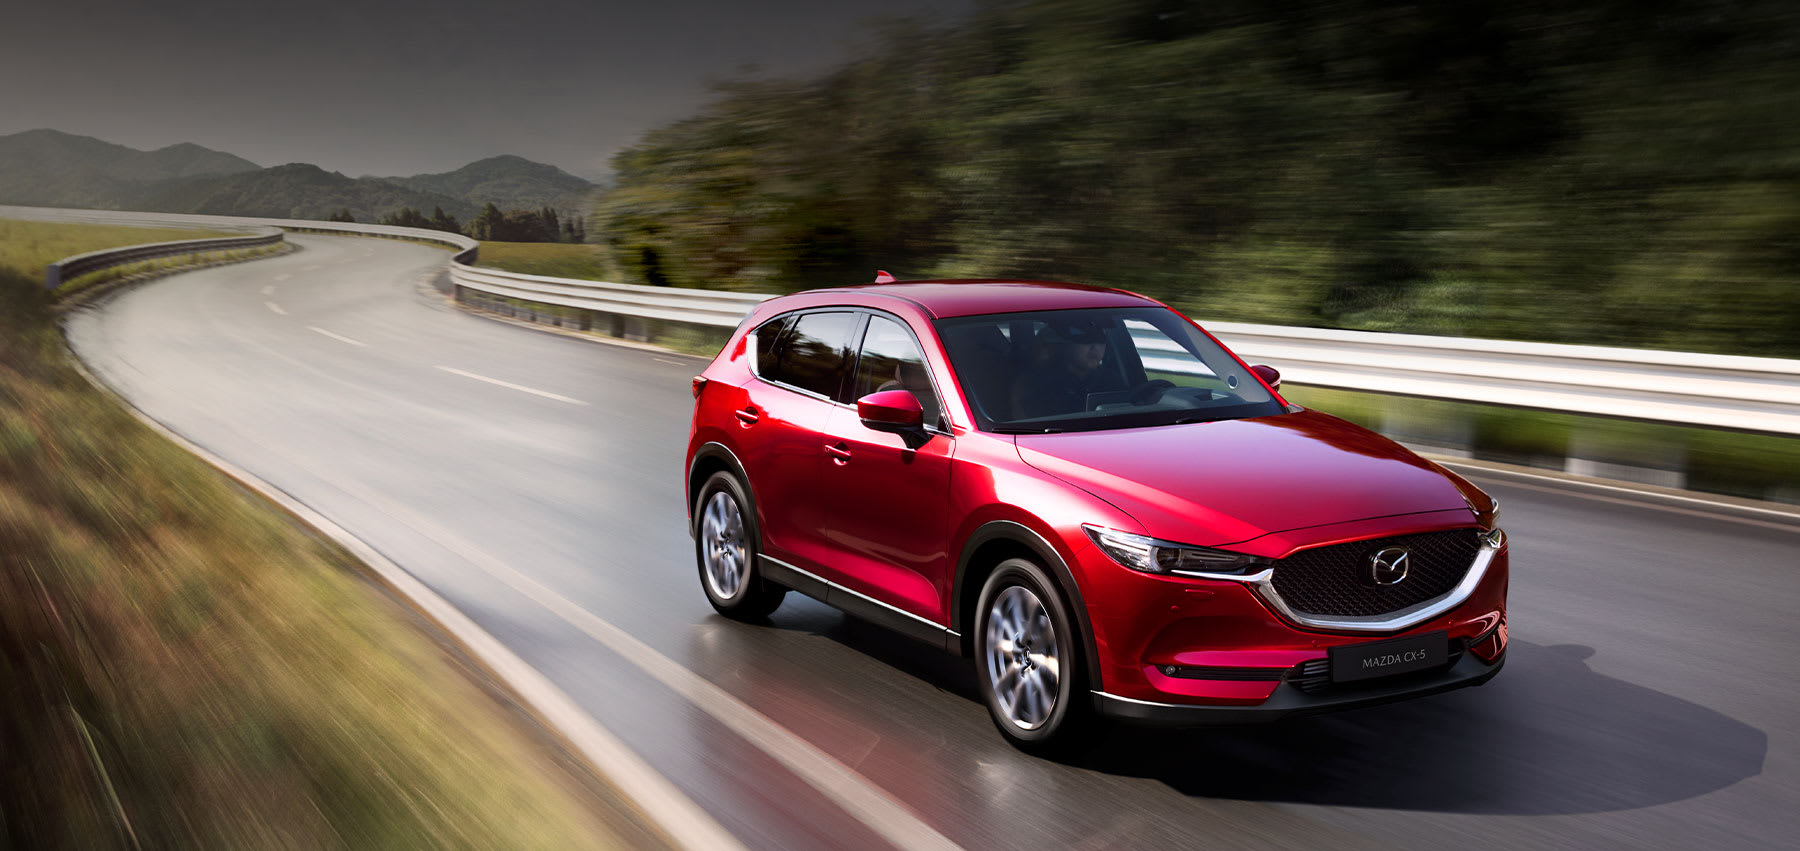 2020 Mazda Cx 7 Wallpaper